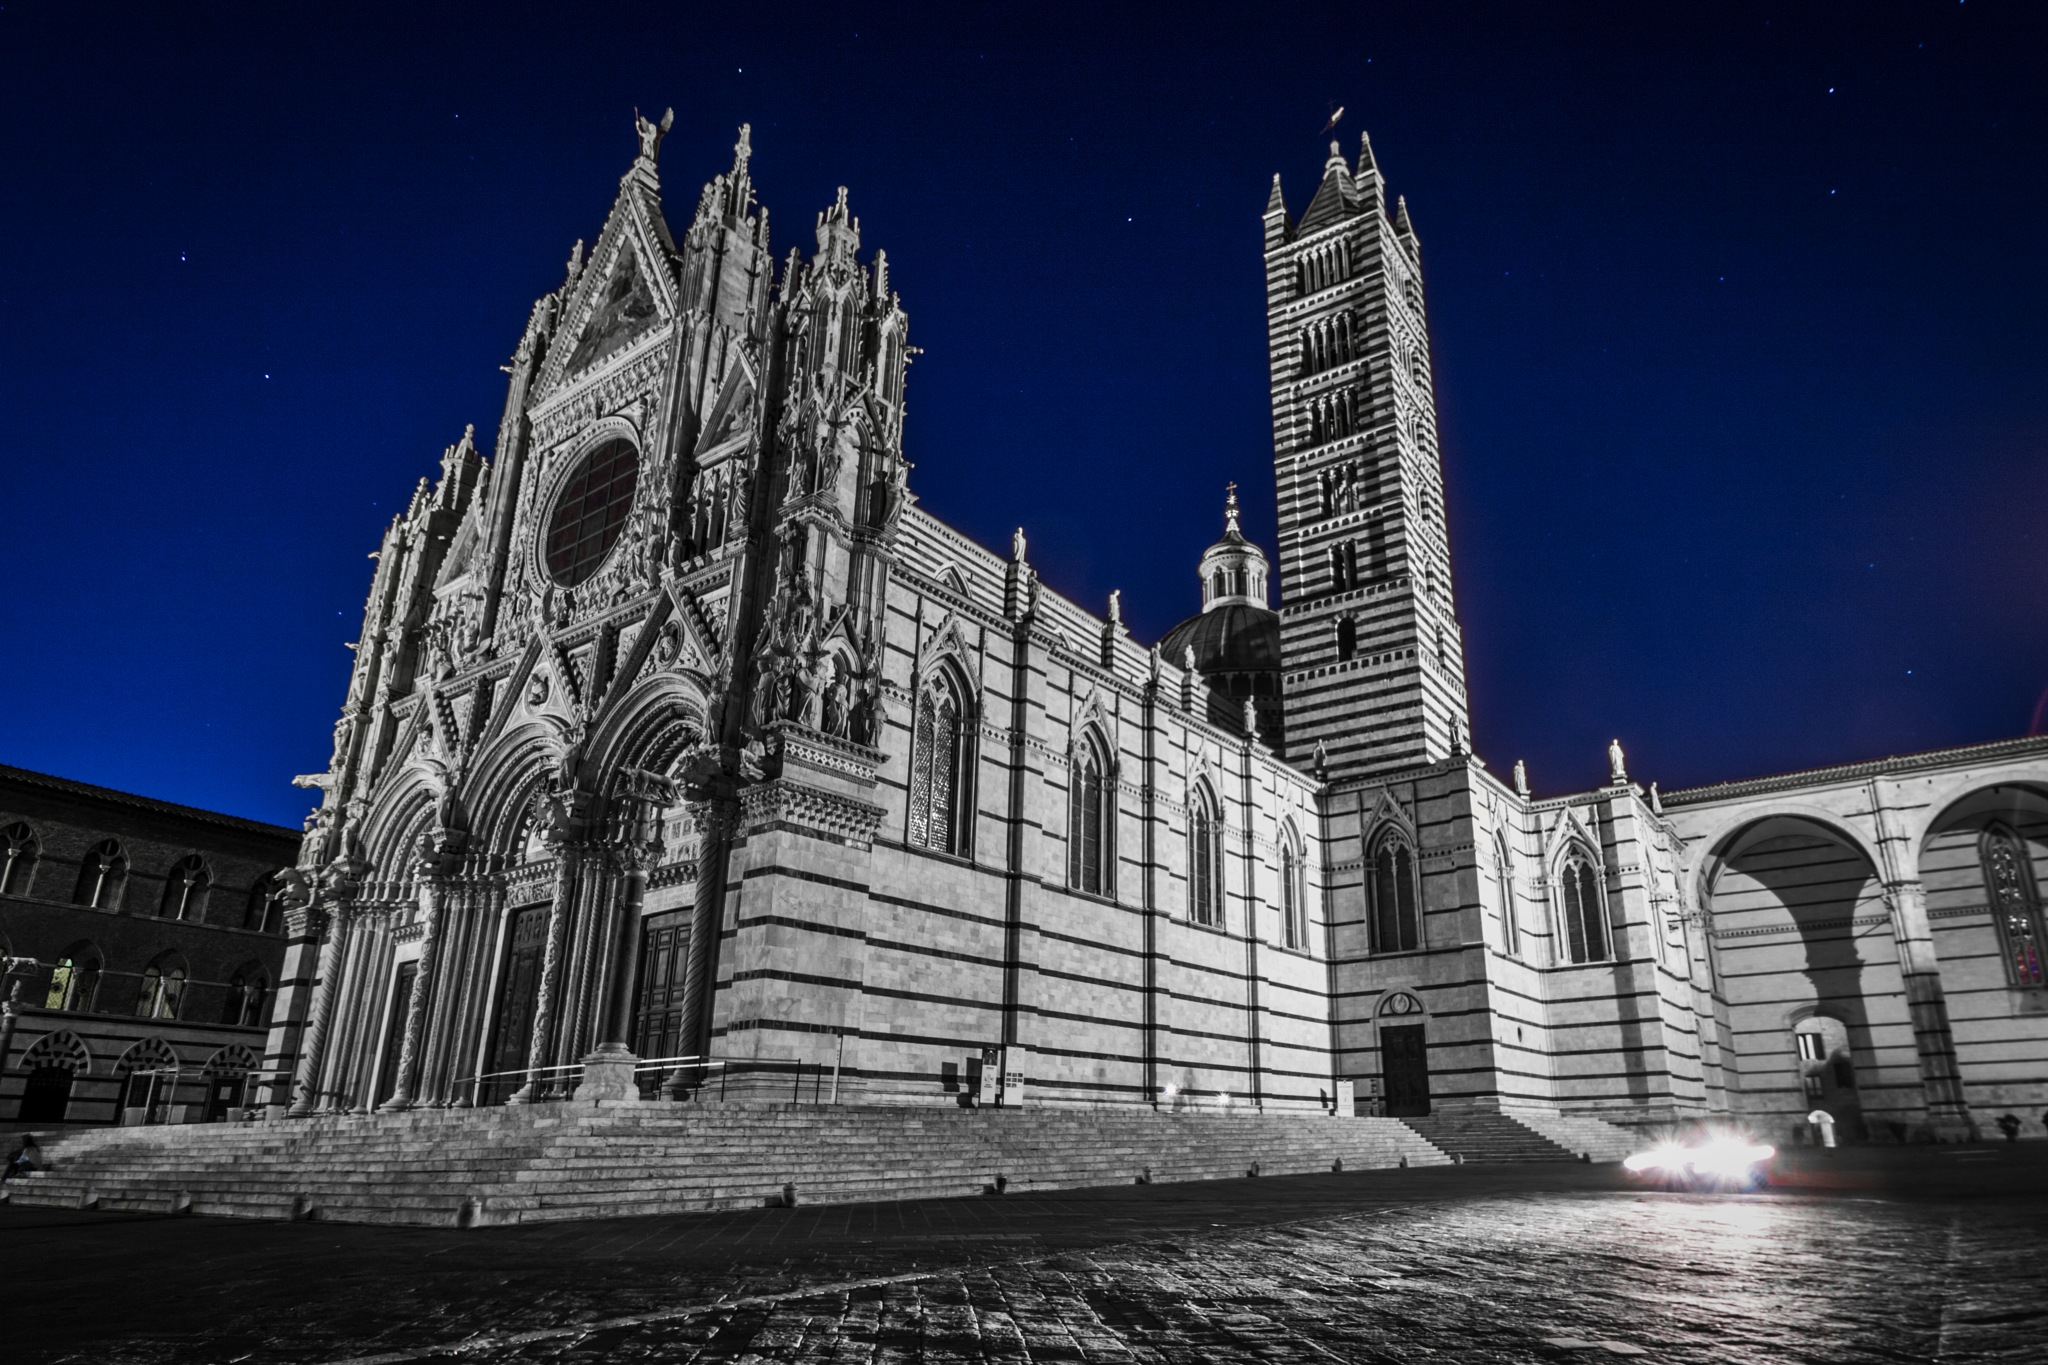 Dreaming of Siena by Boris Droutman